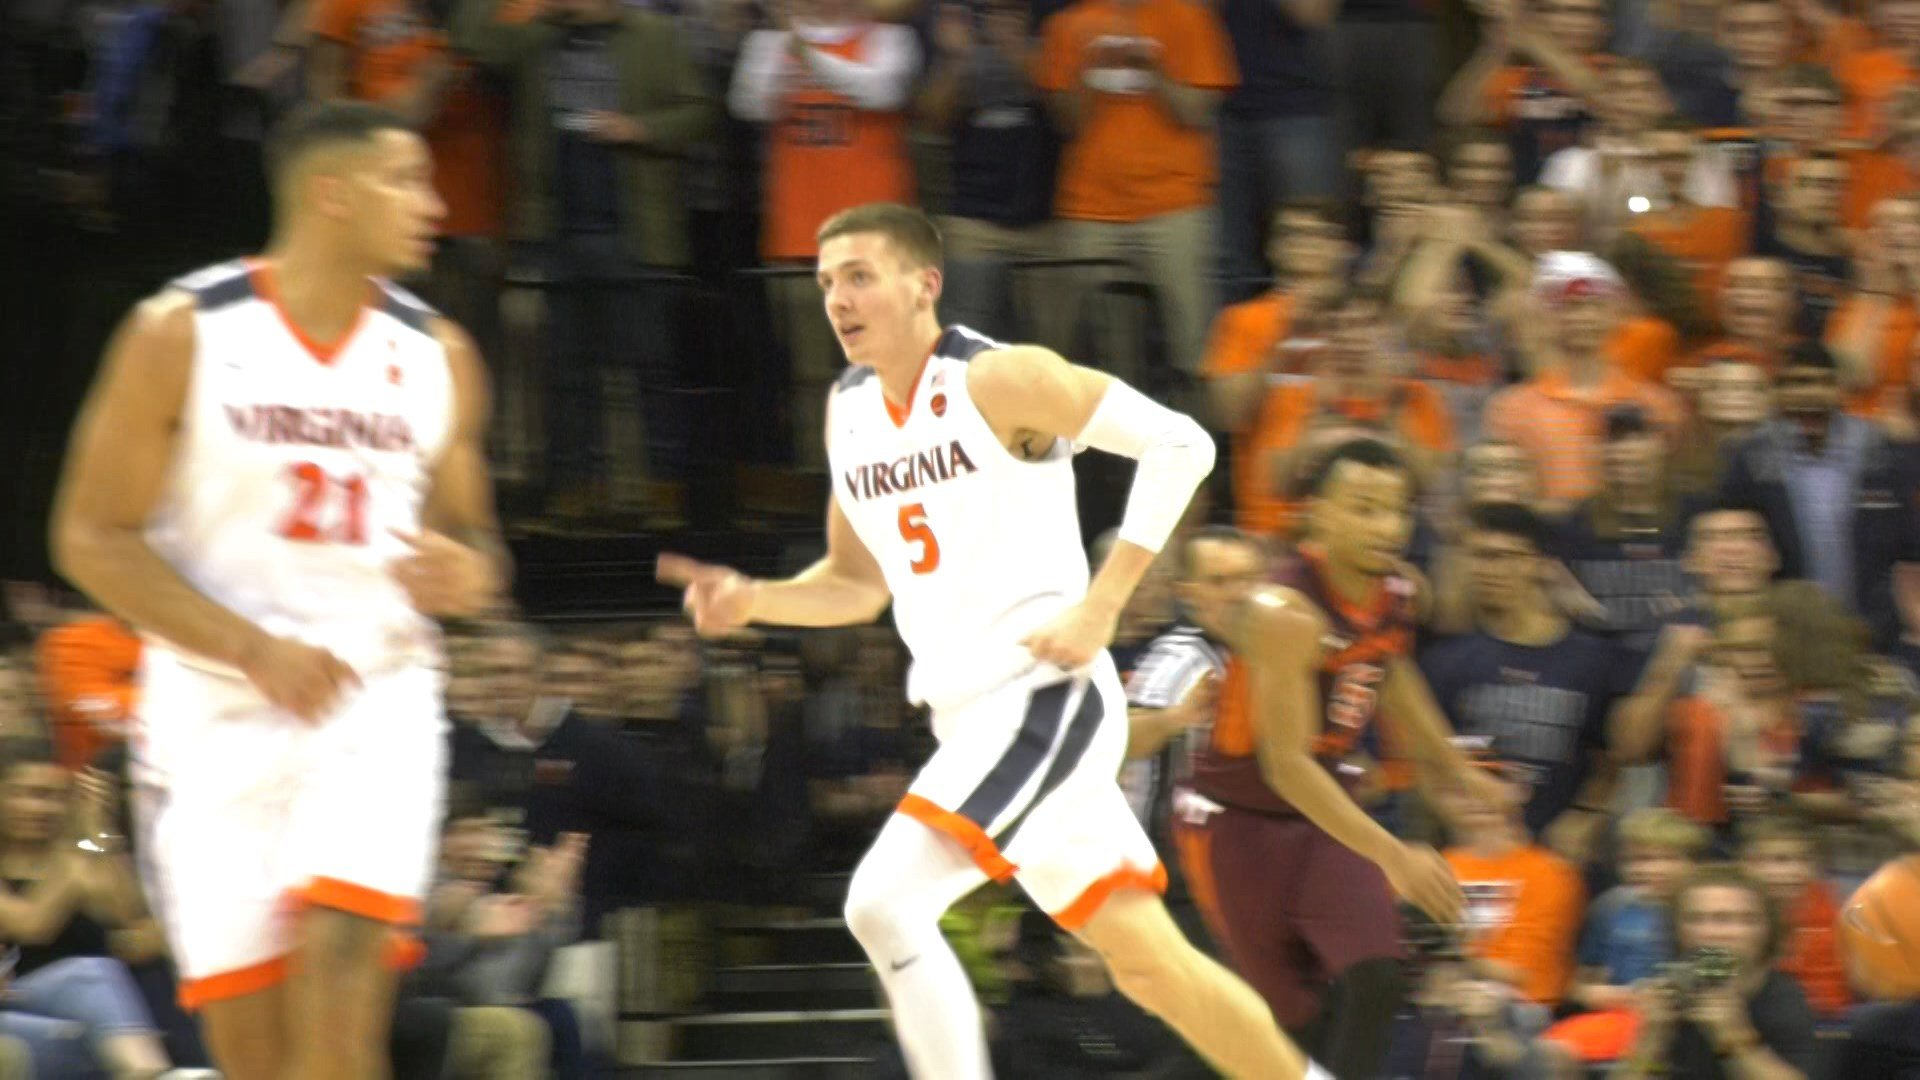 Kyle Guy went 3-of-14 from beyond the arc in the loss to the Hokies